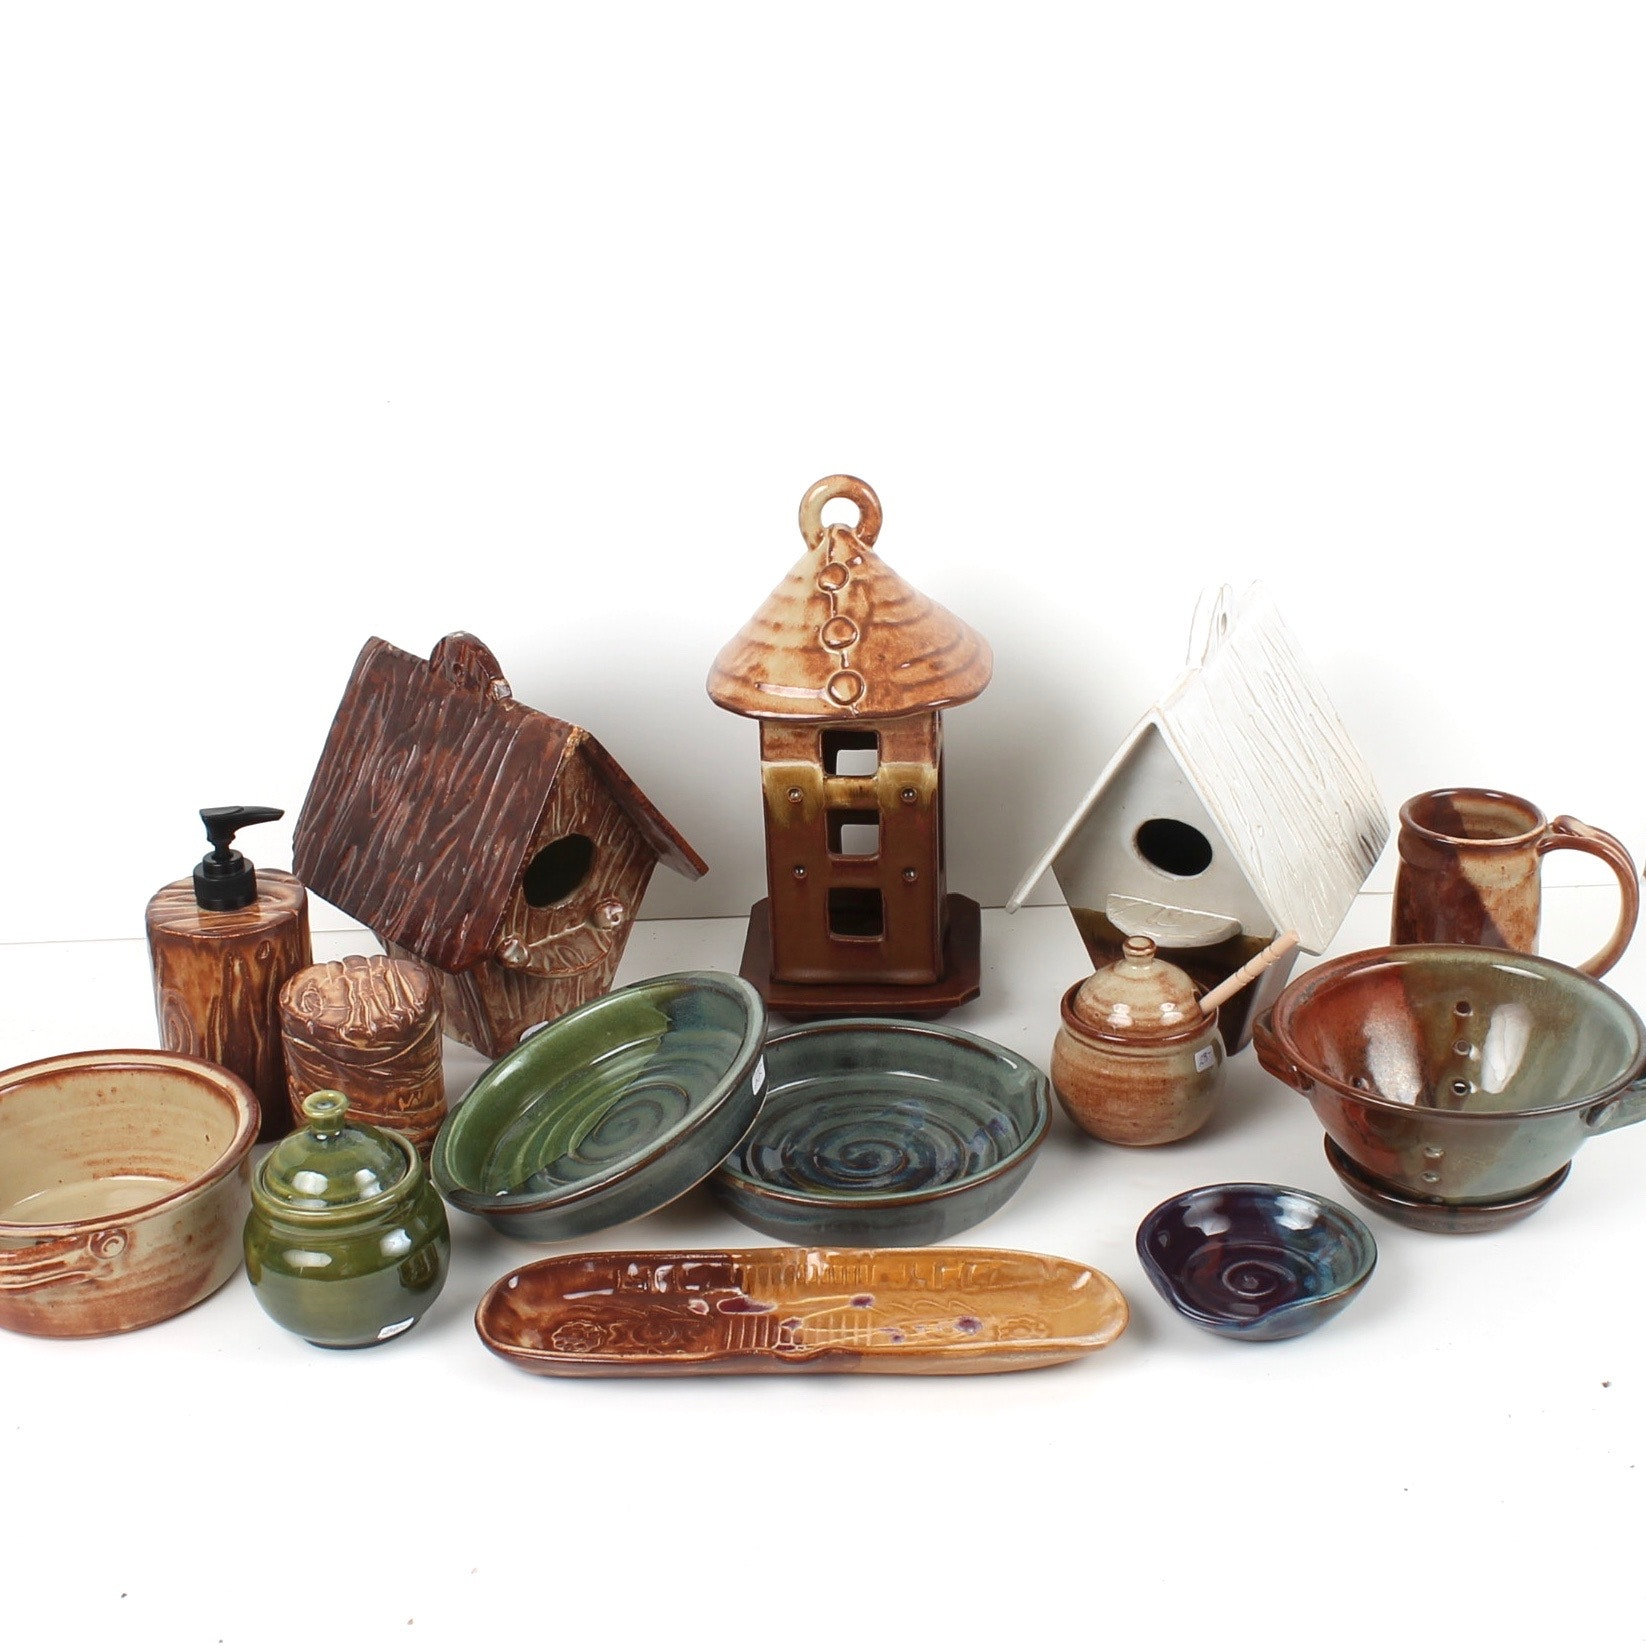 Fred Borthwick Hand Thrown Pottery with Bird Houses